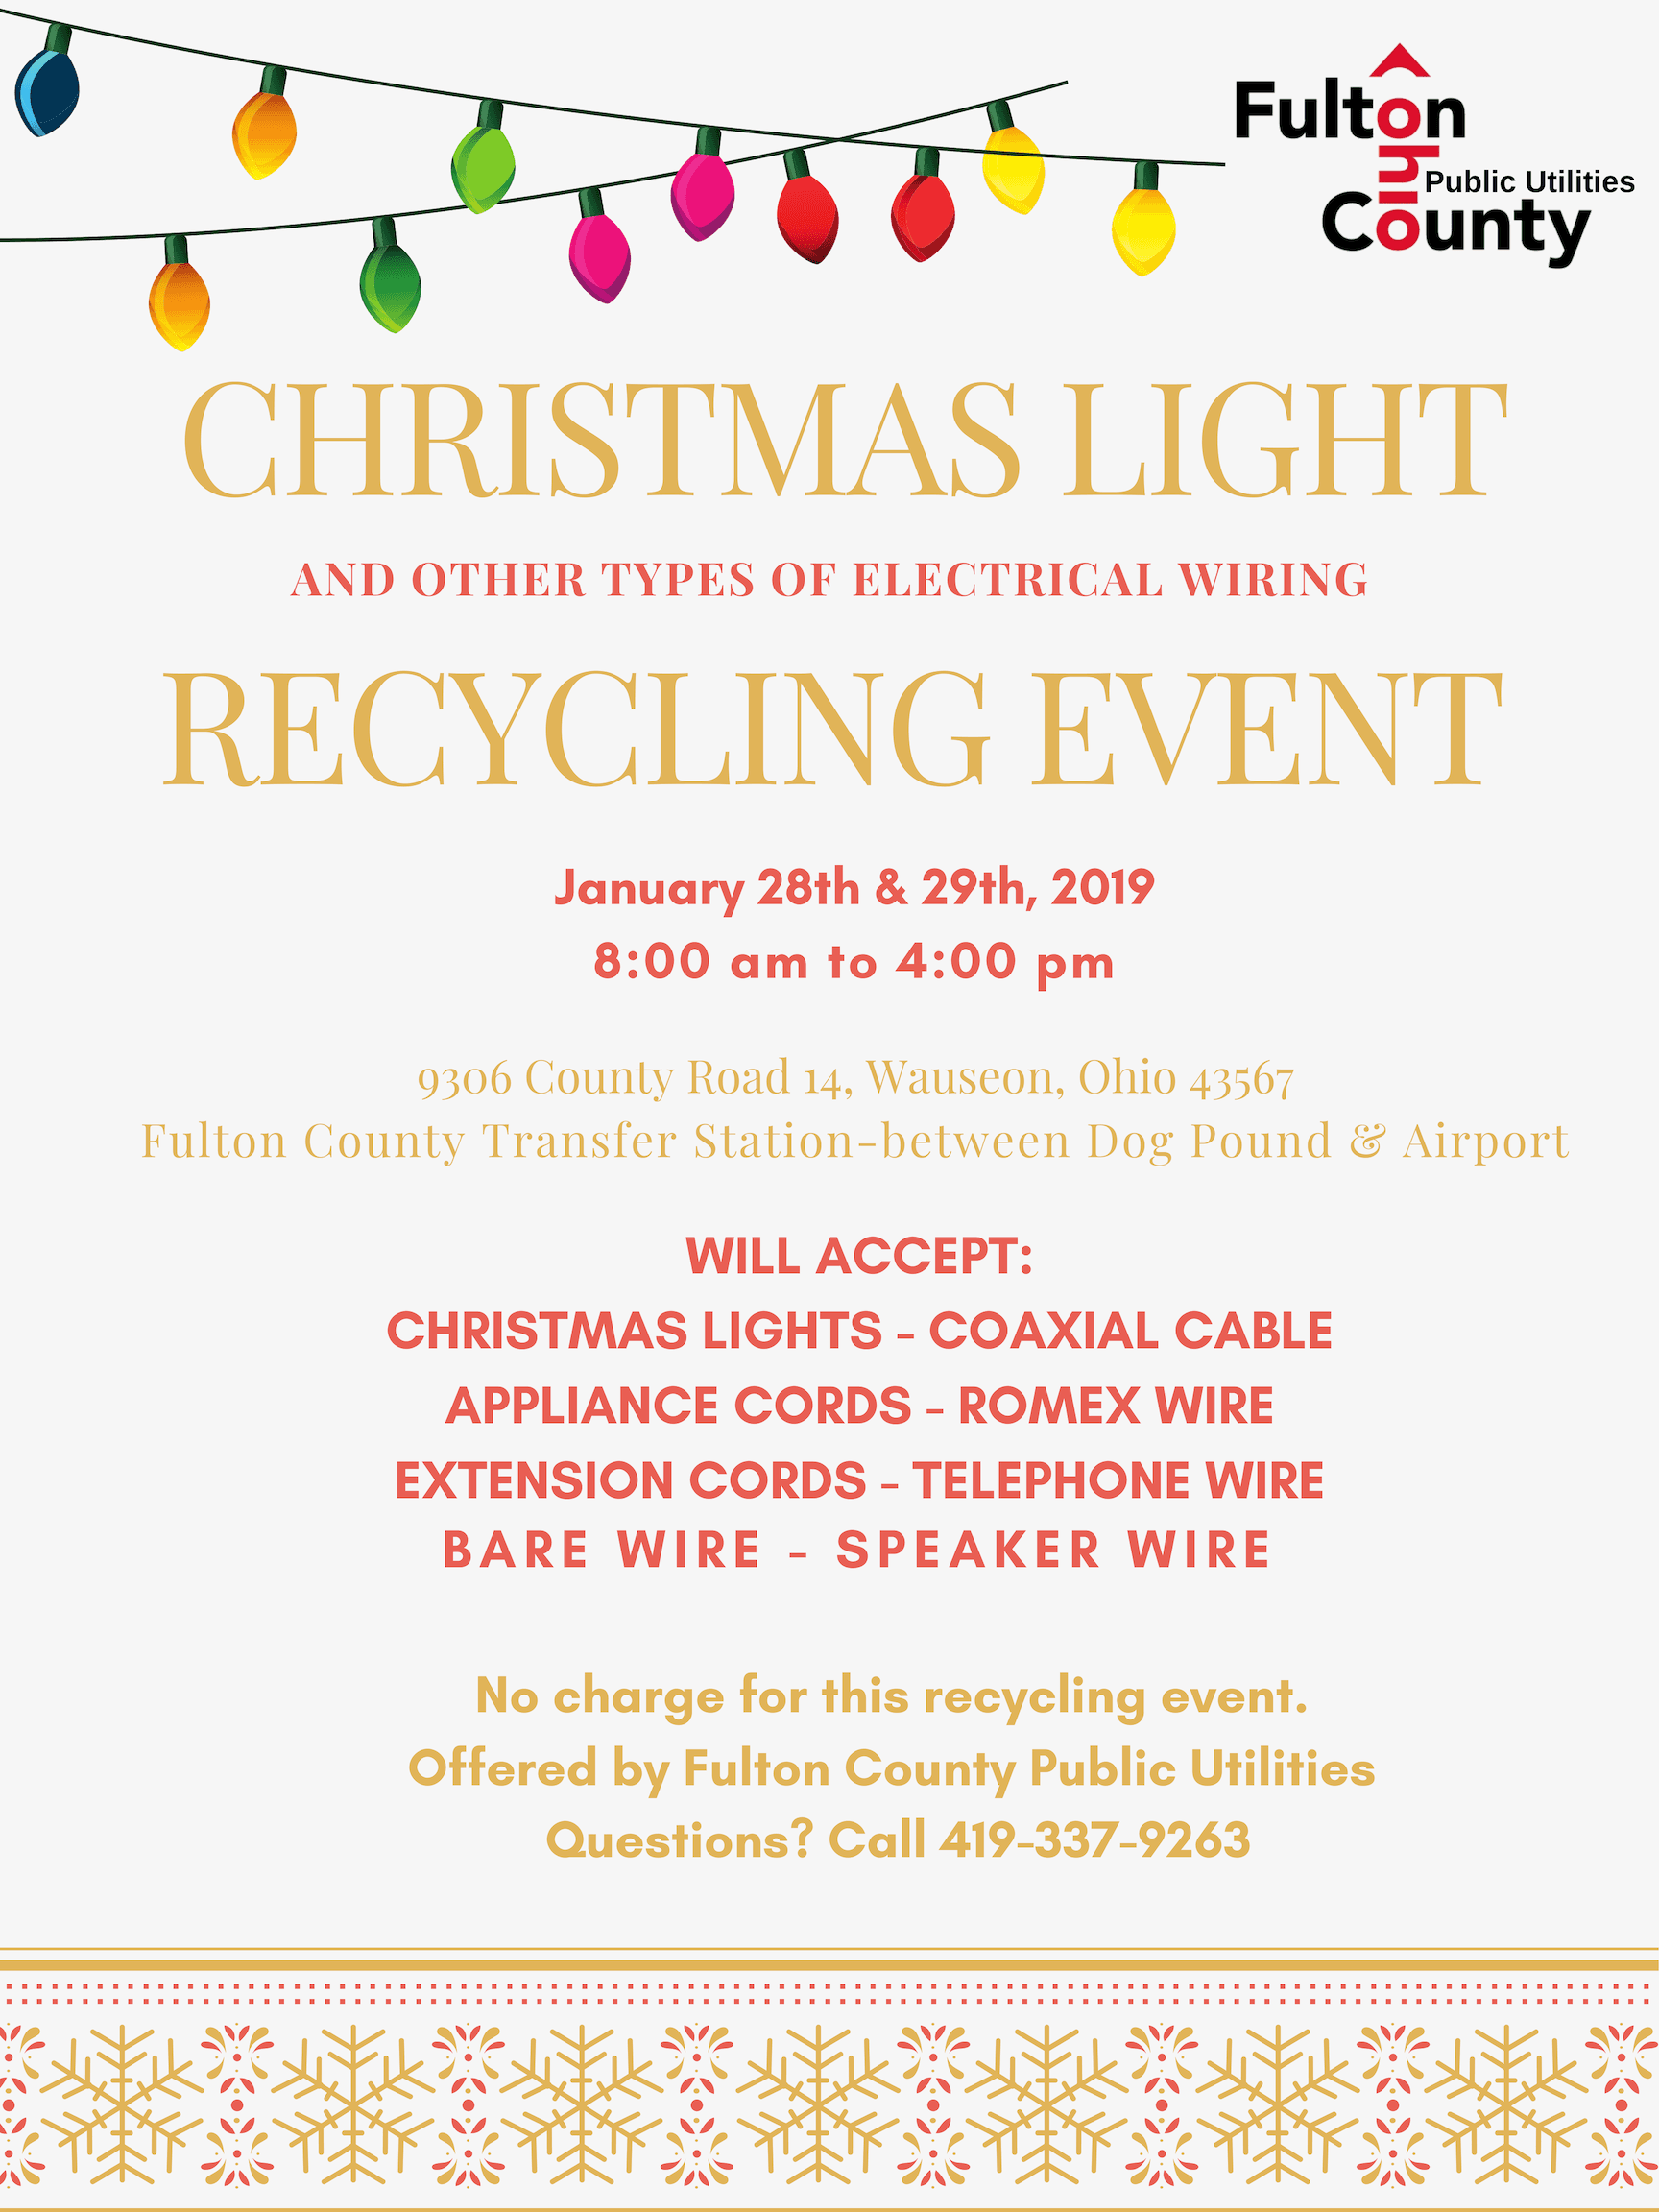 January Christmas Light Recycling Event